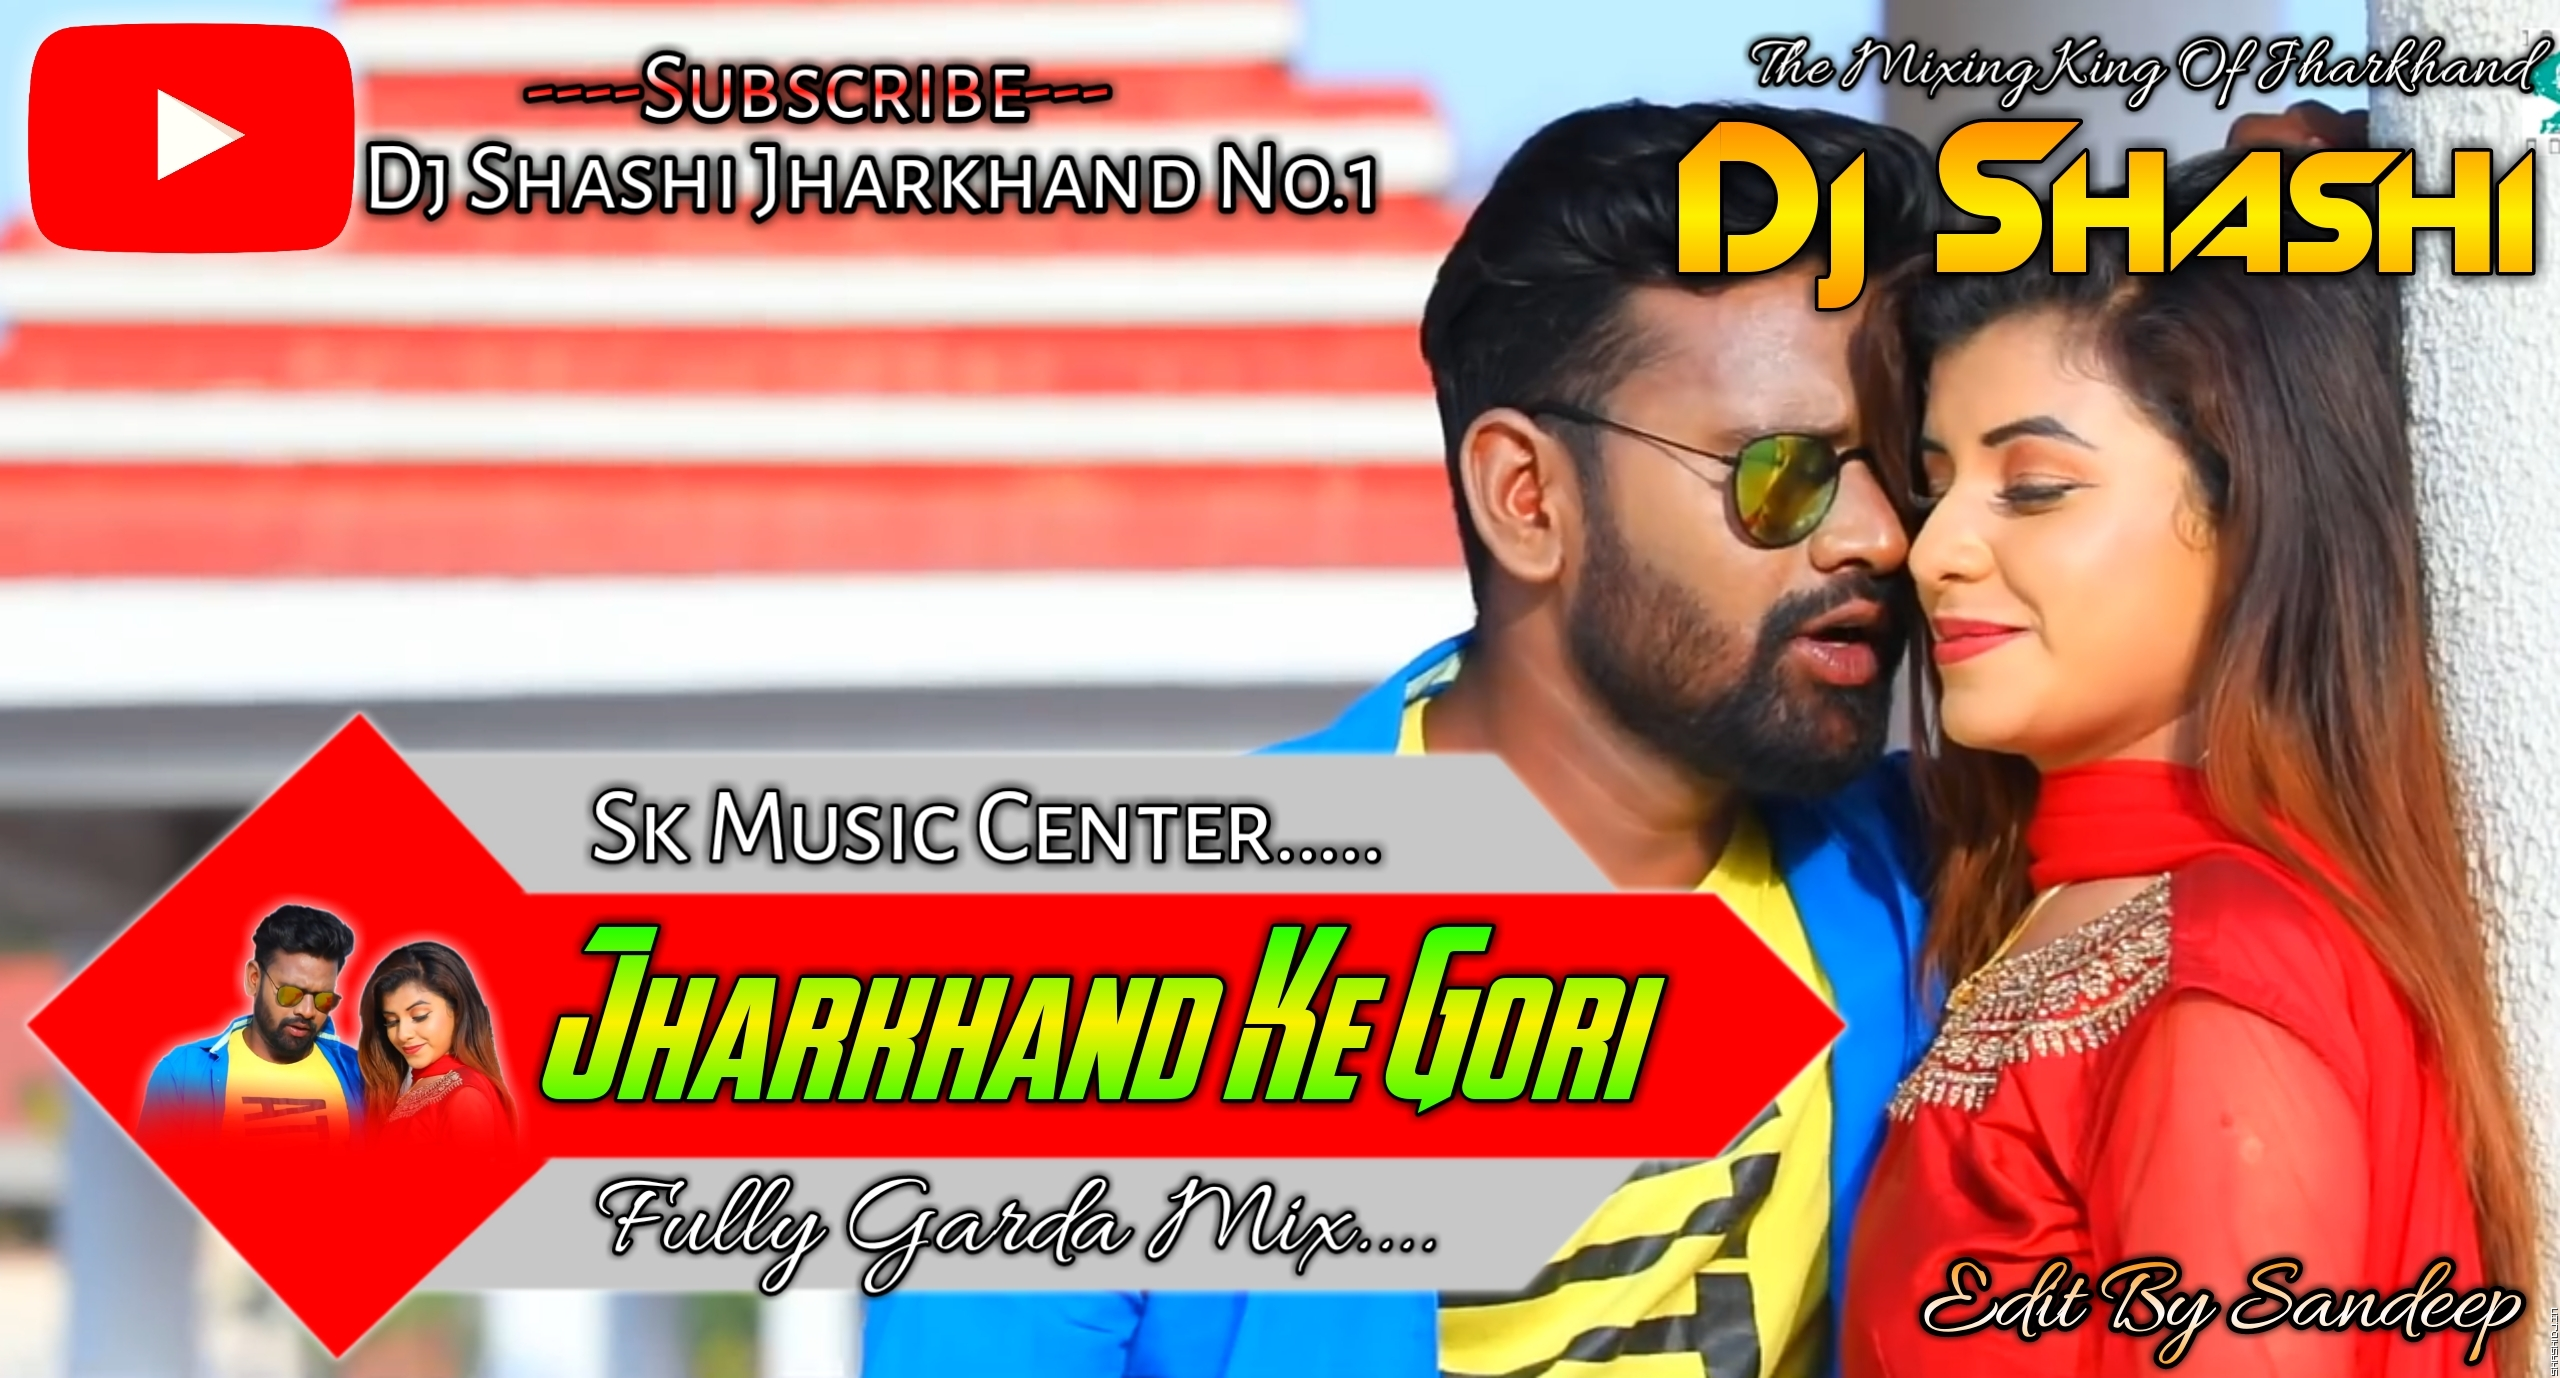 JHARKHAND KAR GORI--SUPER HIT DANCE MIX BY DJ SHASHI.mp3